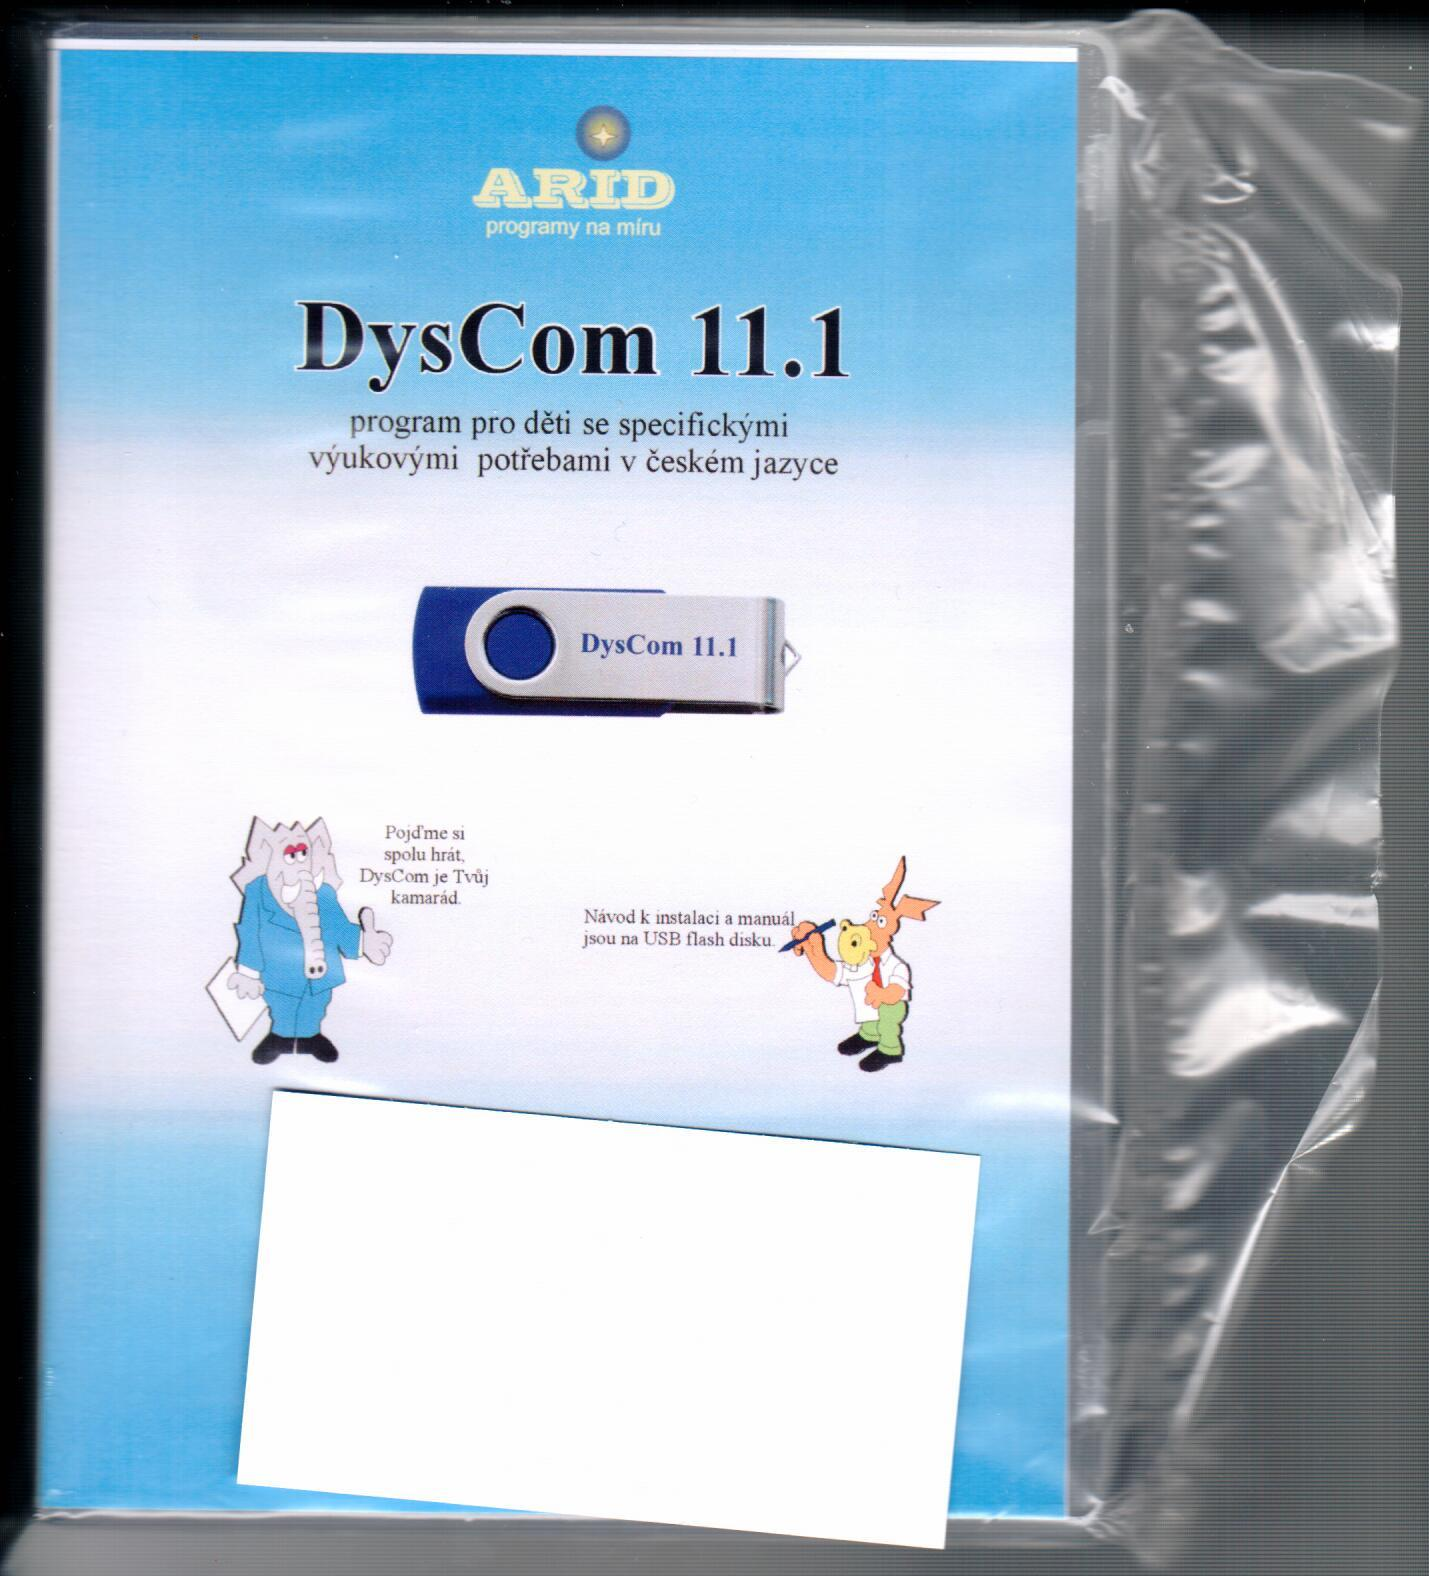 DysCom - USB flash disk